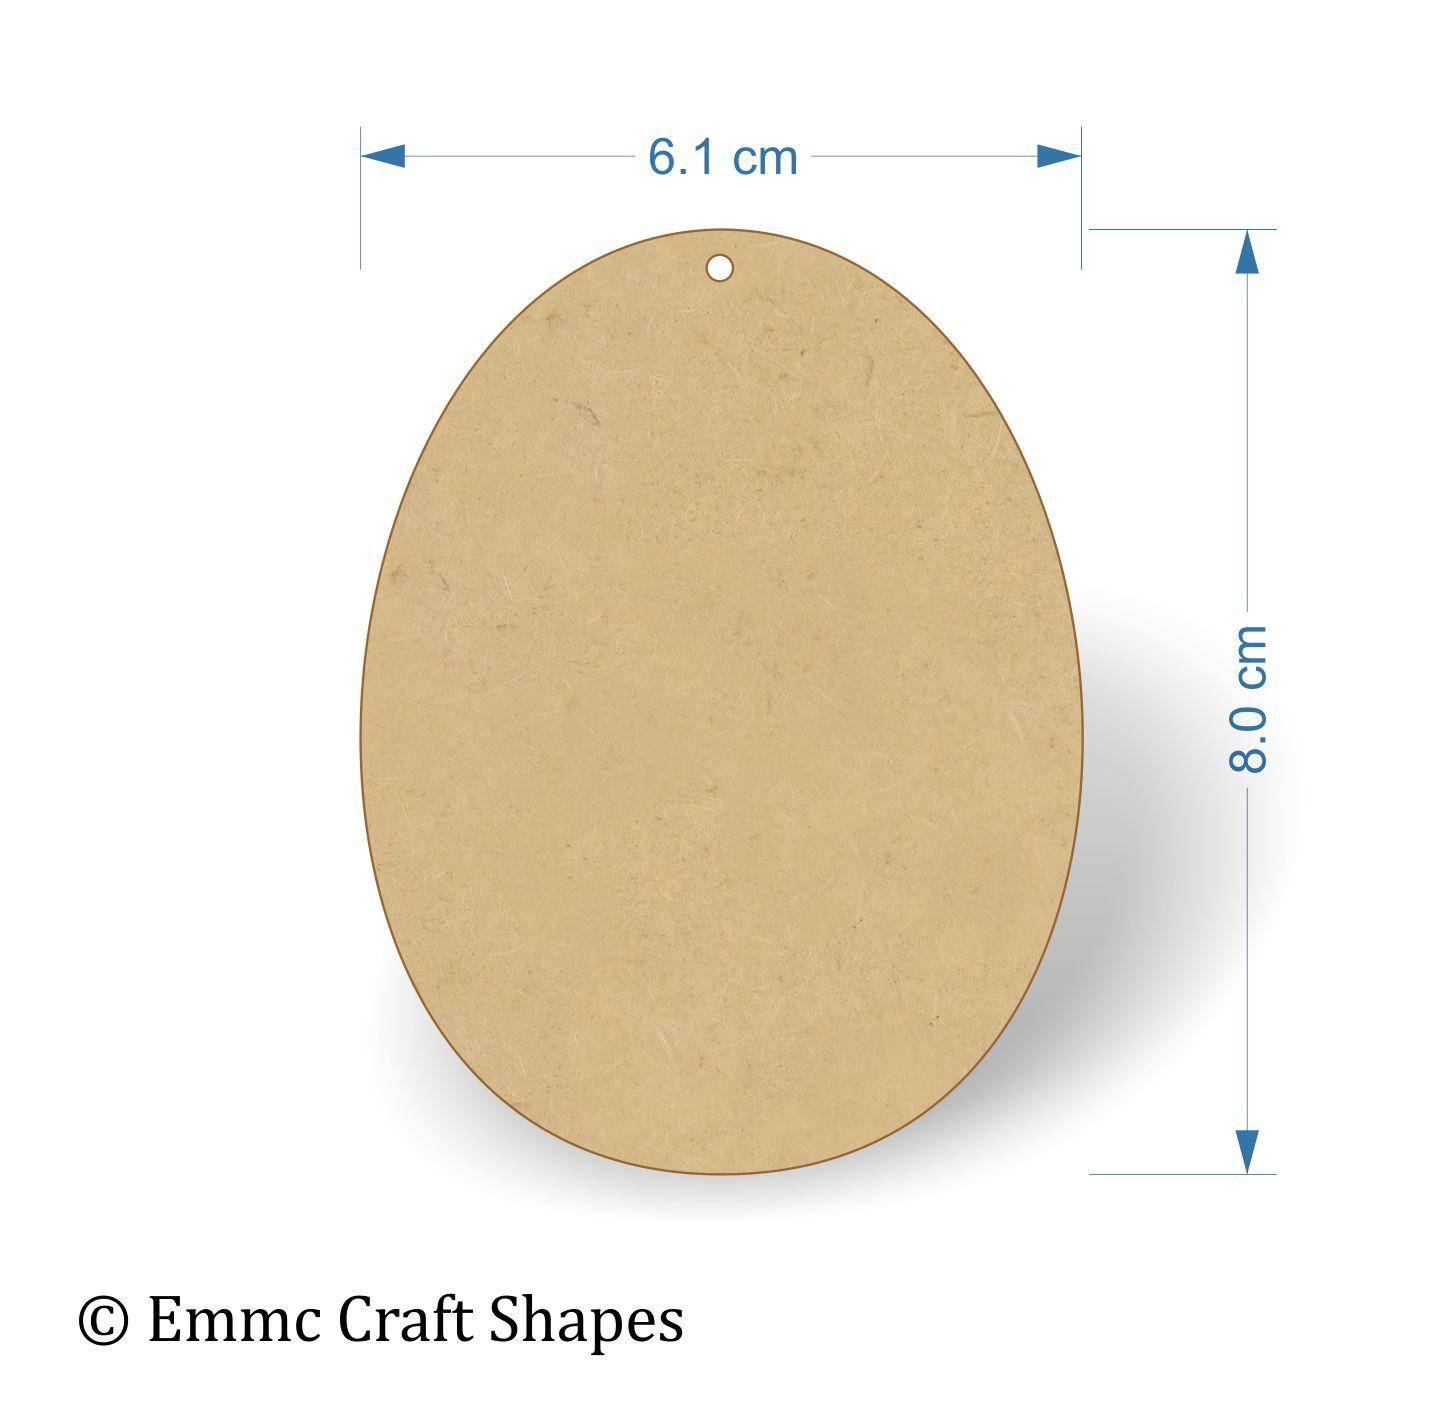 3 mm MDF Egg Shape - 8 cm with hanging hole